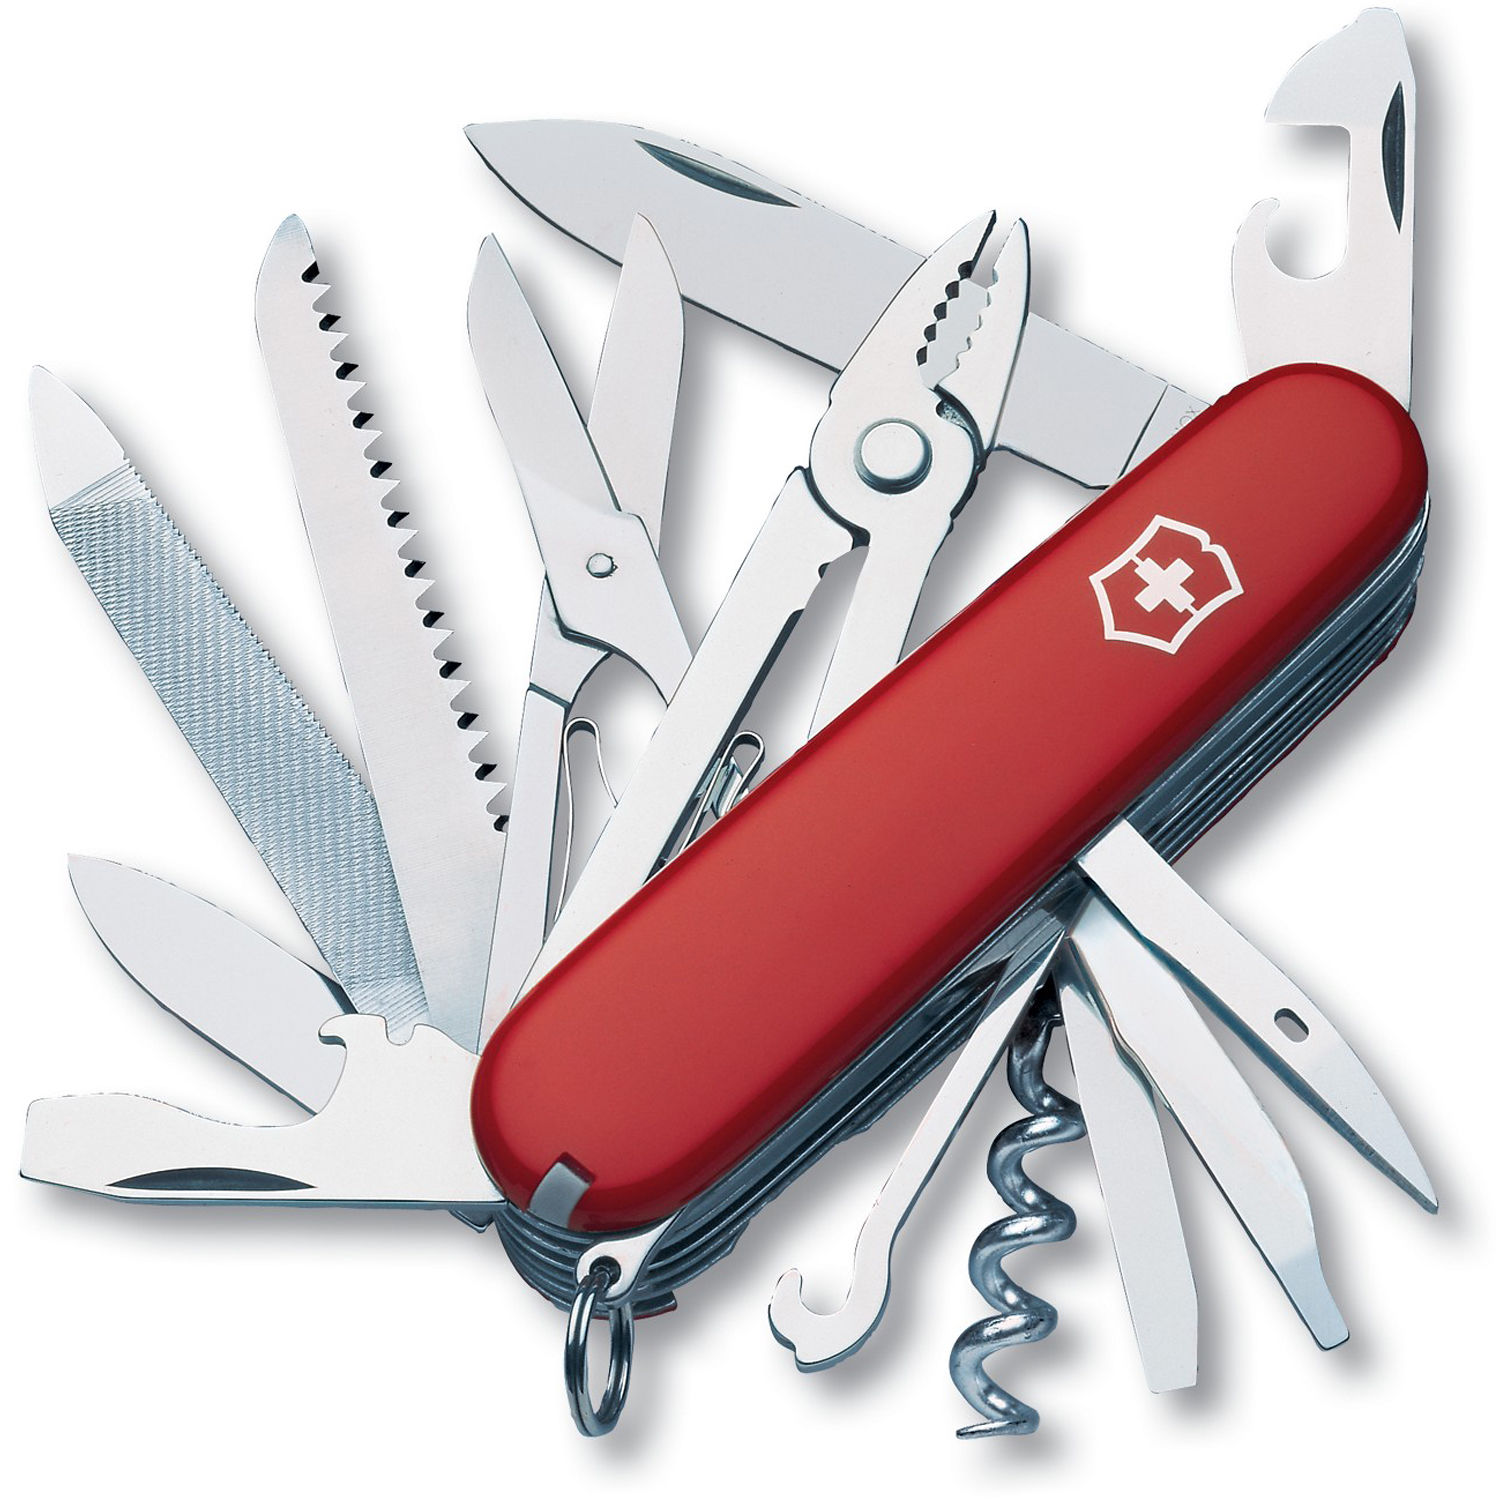 Victorinox Handyman Pocket Knife 53722 B Amp H Photo Video